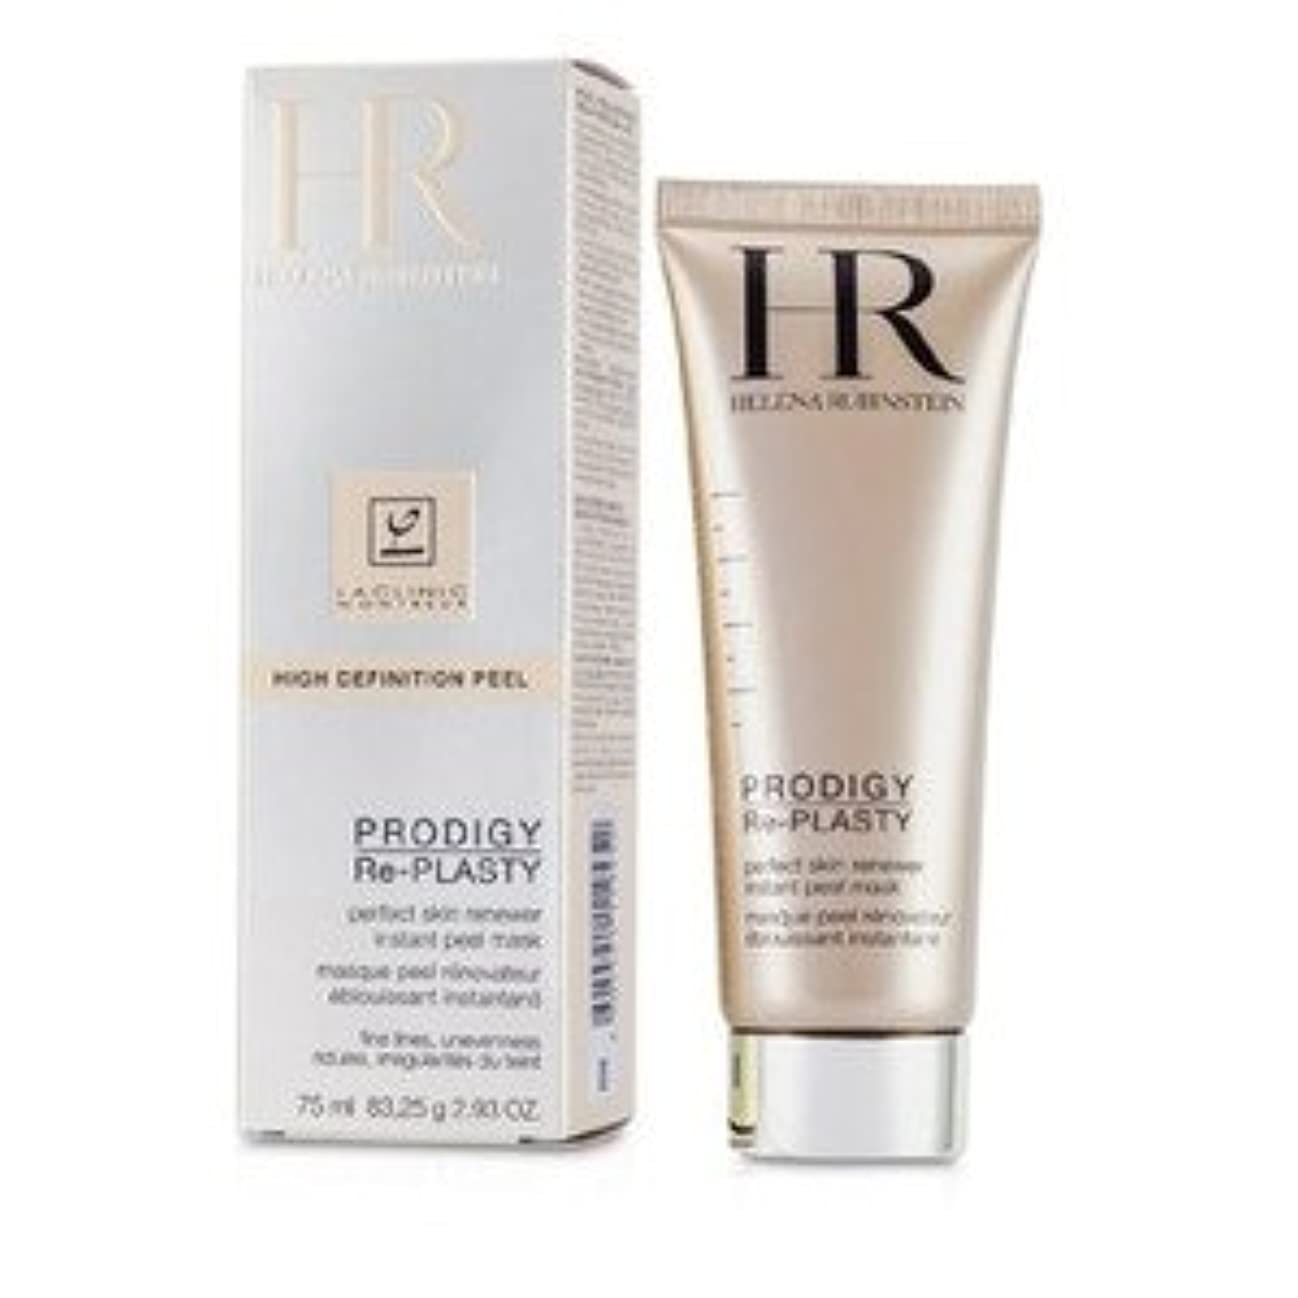 真鍮タイトネーピアHelena Rubinstein(ヘレナ?ルビンスタイン) Prodigy Re-Plasty High Definition Peel Perfect Skin Renewer Instant Peel Mask 75ml...